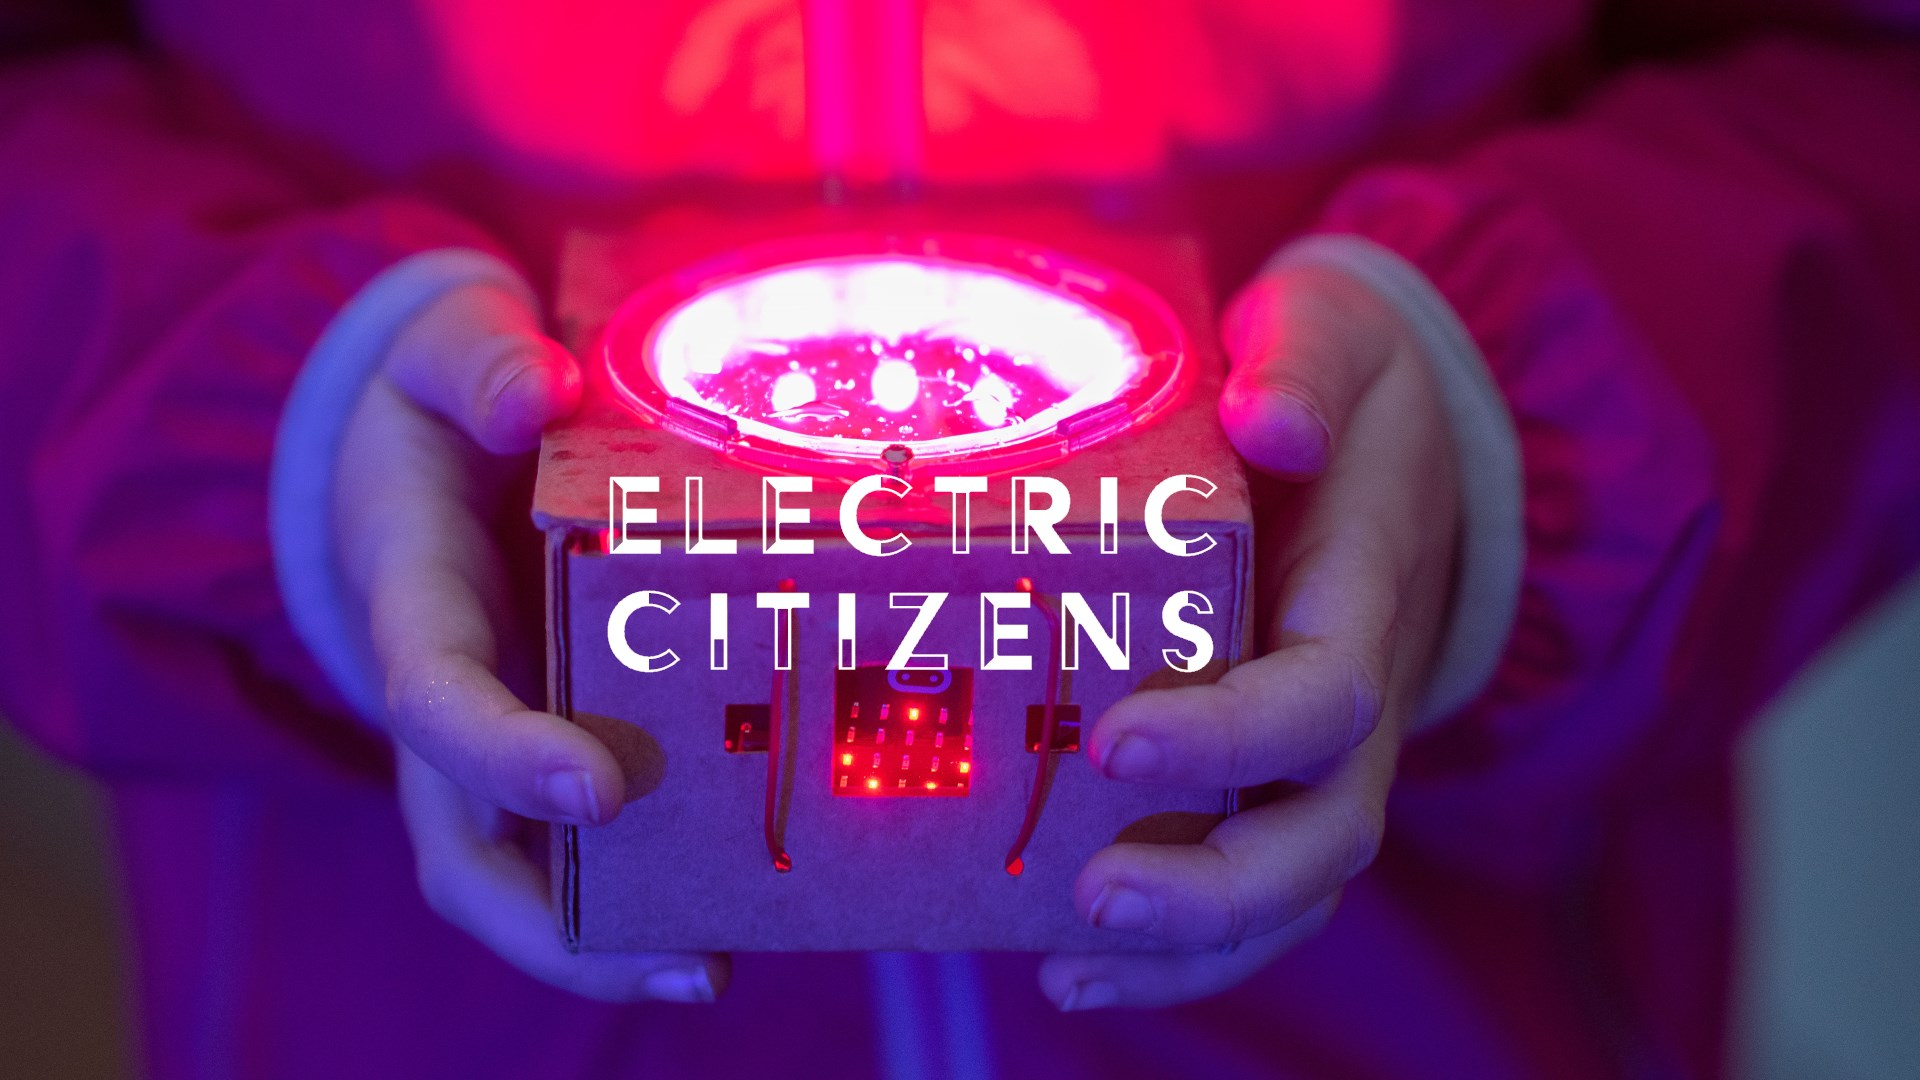 Electric Citizens